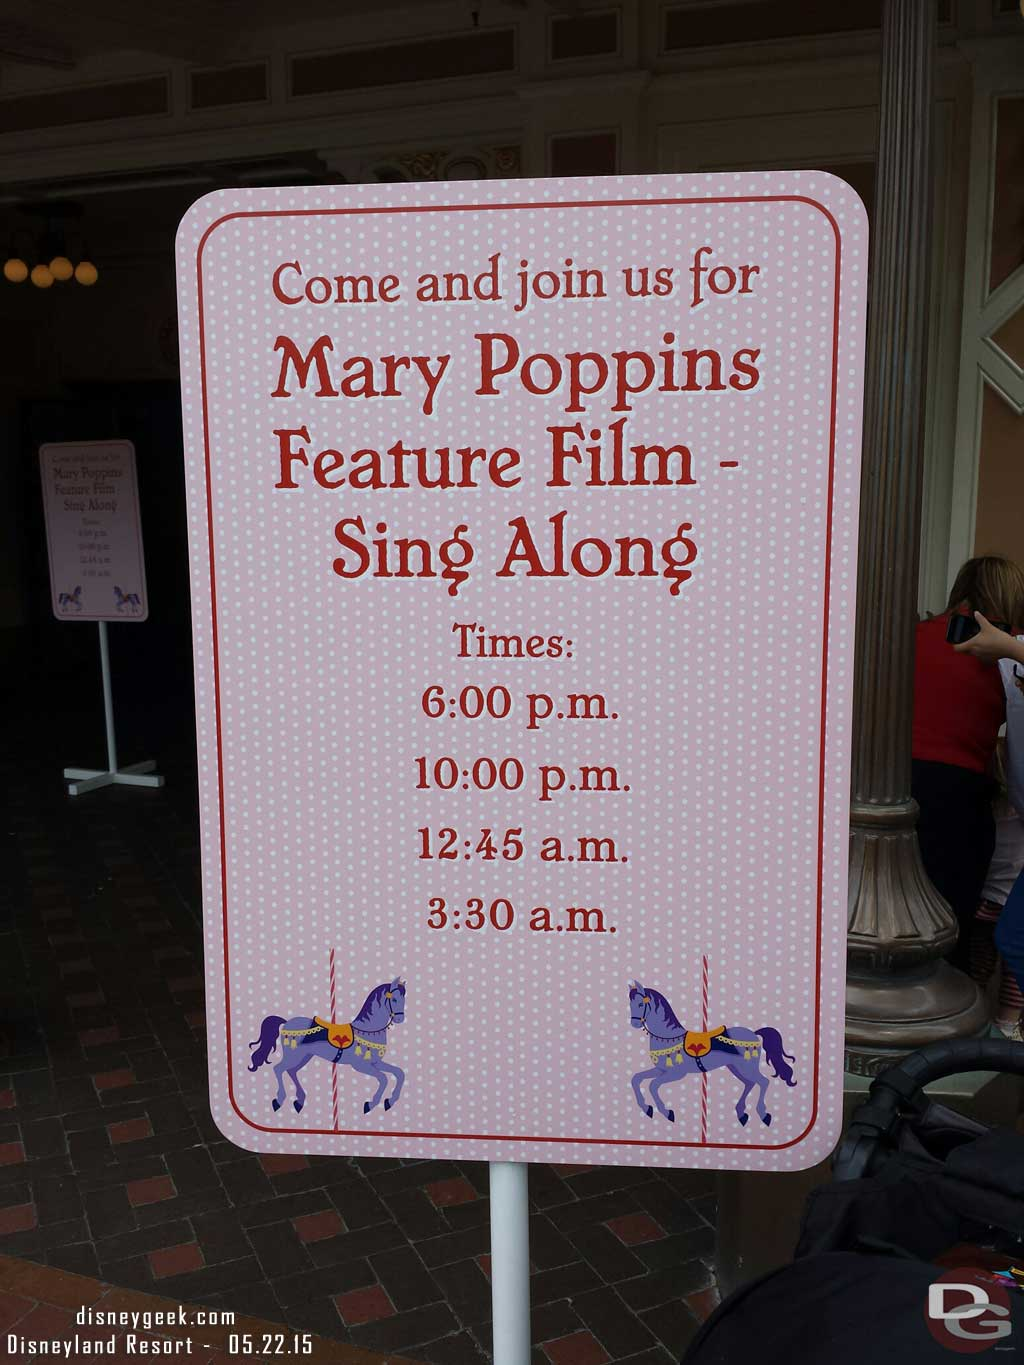 The Main Street Opera House has Mary Poppins sing a longs tonight #Disneyland60